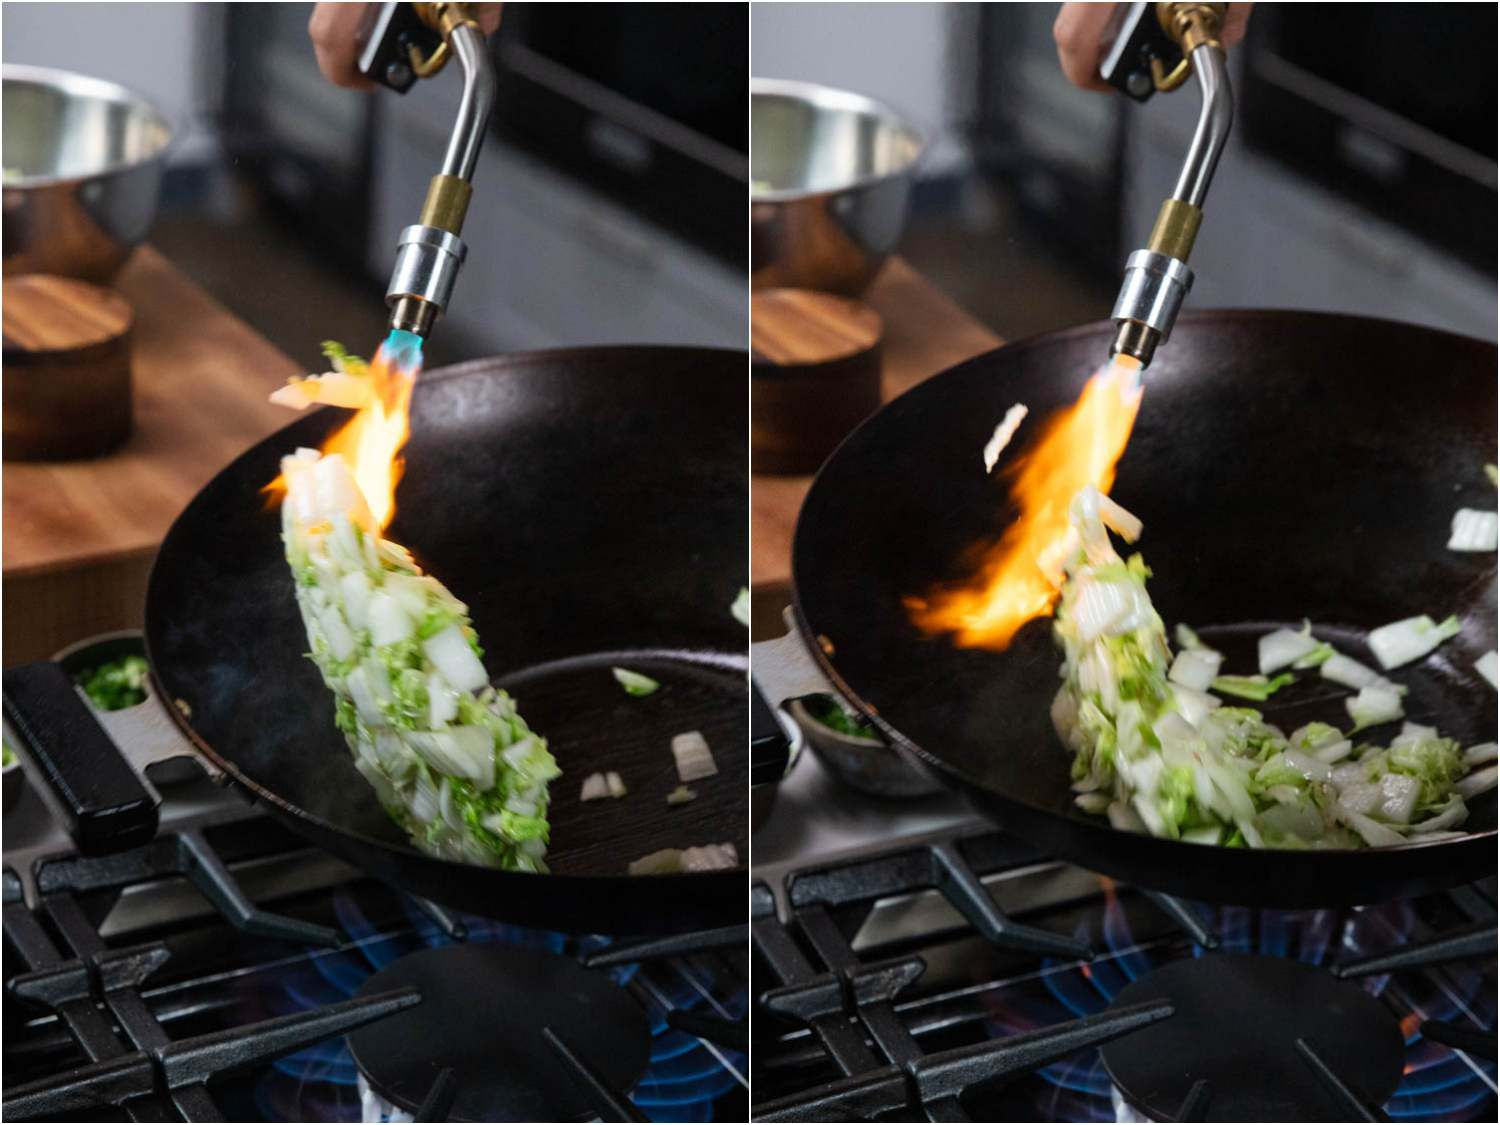 20200117-wok-hei-hack-fried-rice-vicky-wasik-collage1